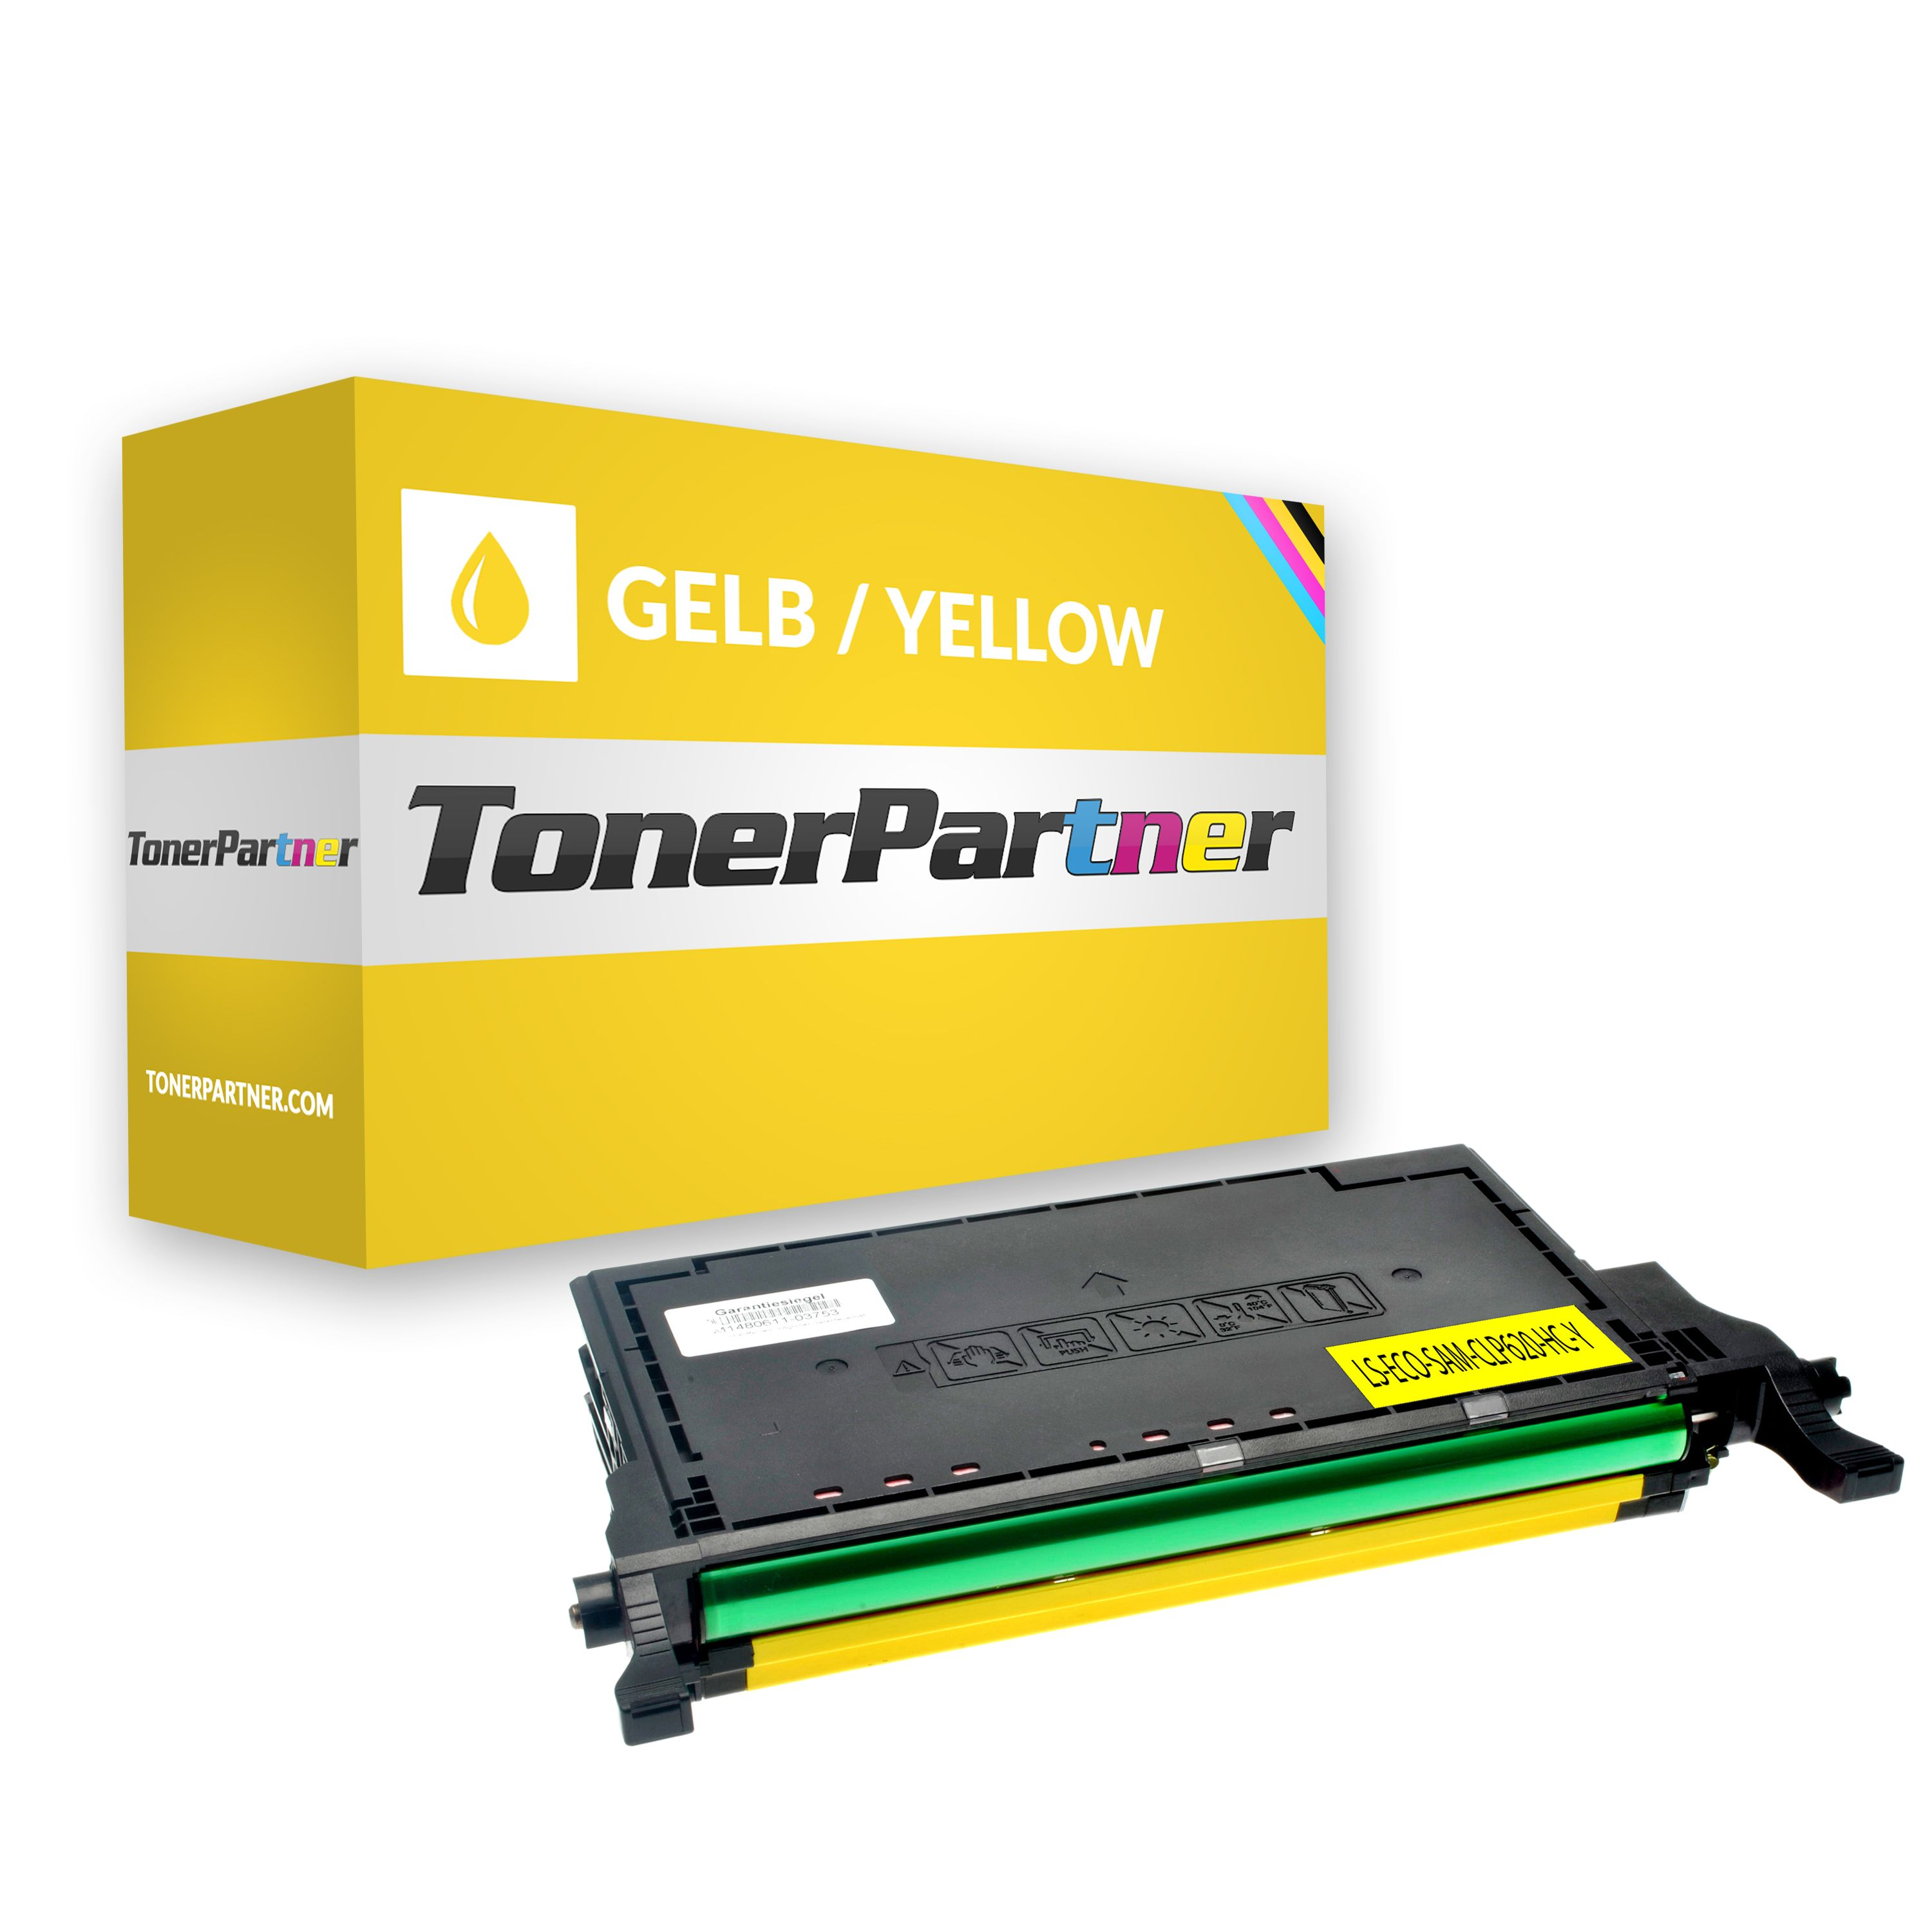 Compatible to Samsung CLTY5082LELS / Y5082L Toner yellow